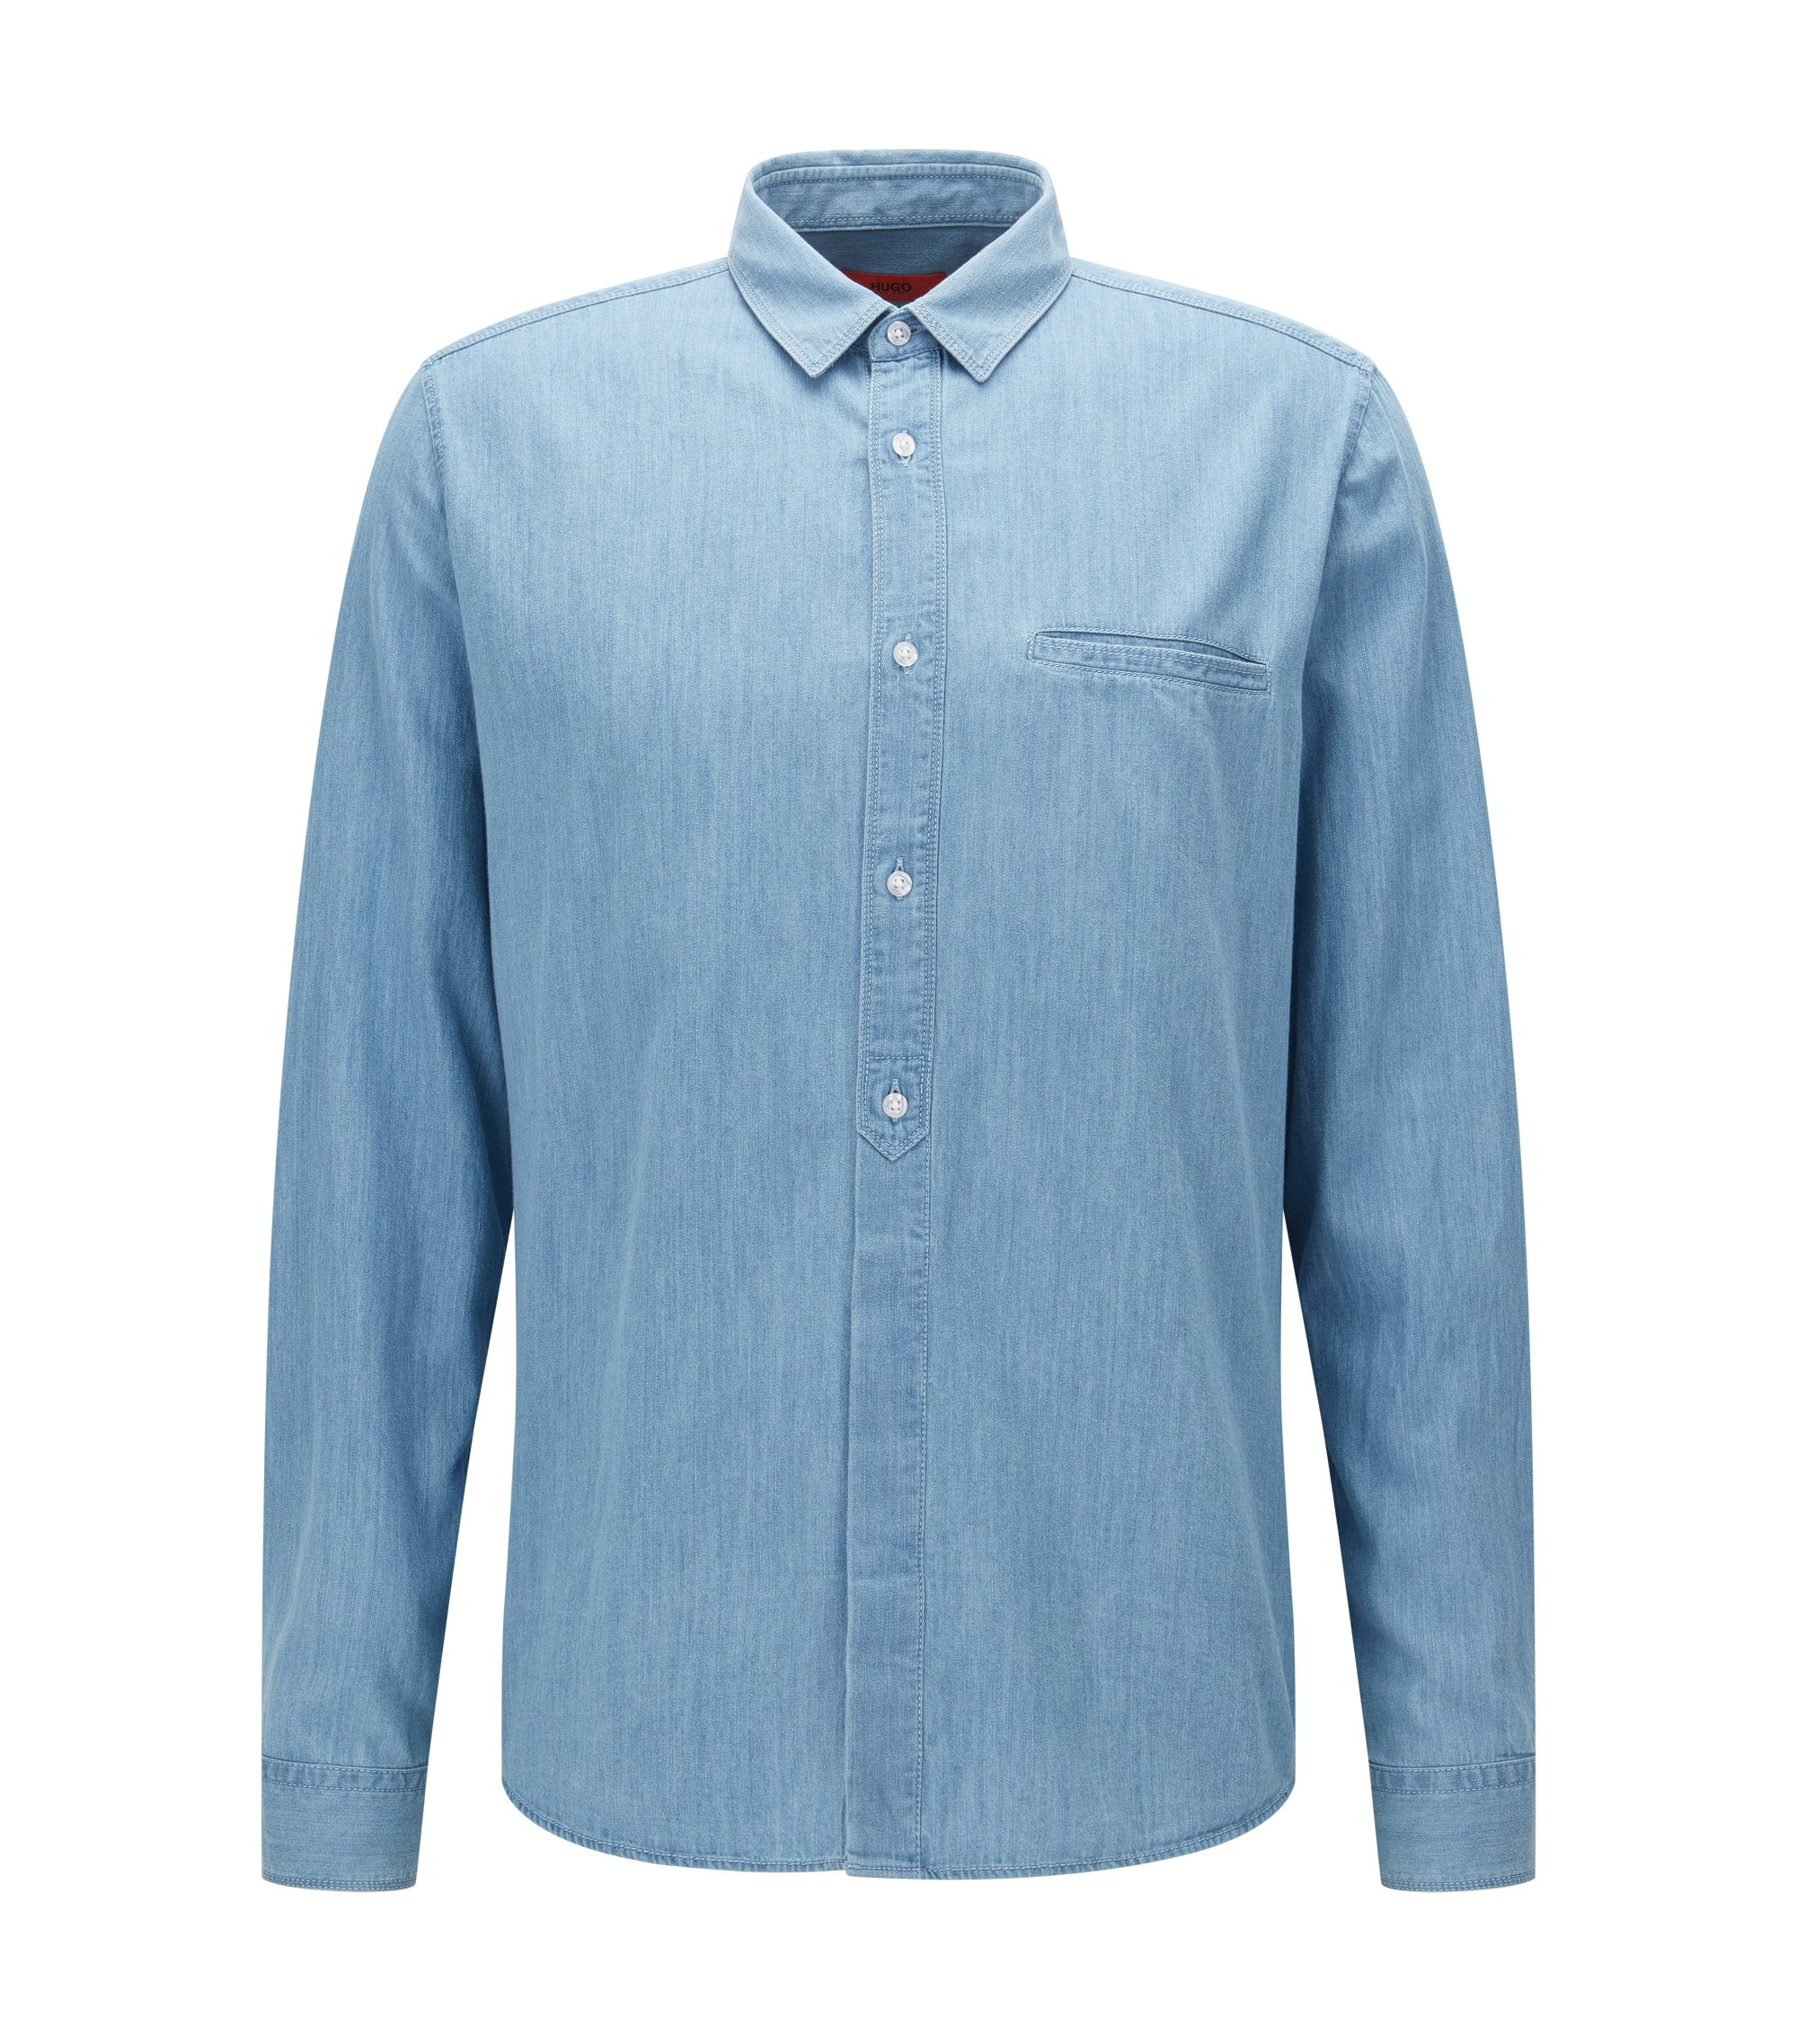 Relaxed-Fit Hemd aus Washed Denim, Hellblau